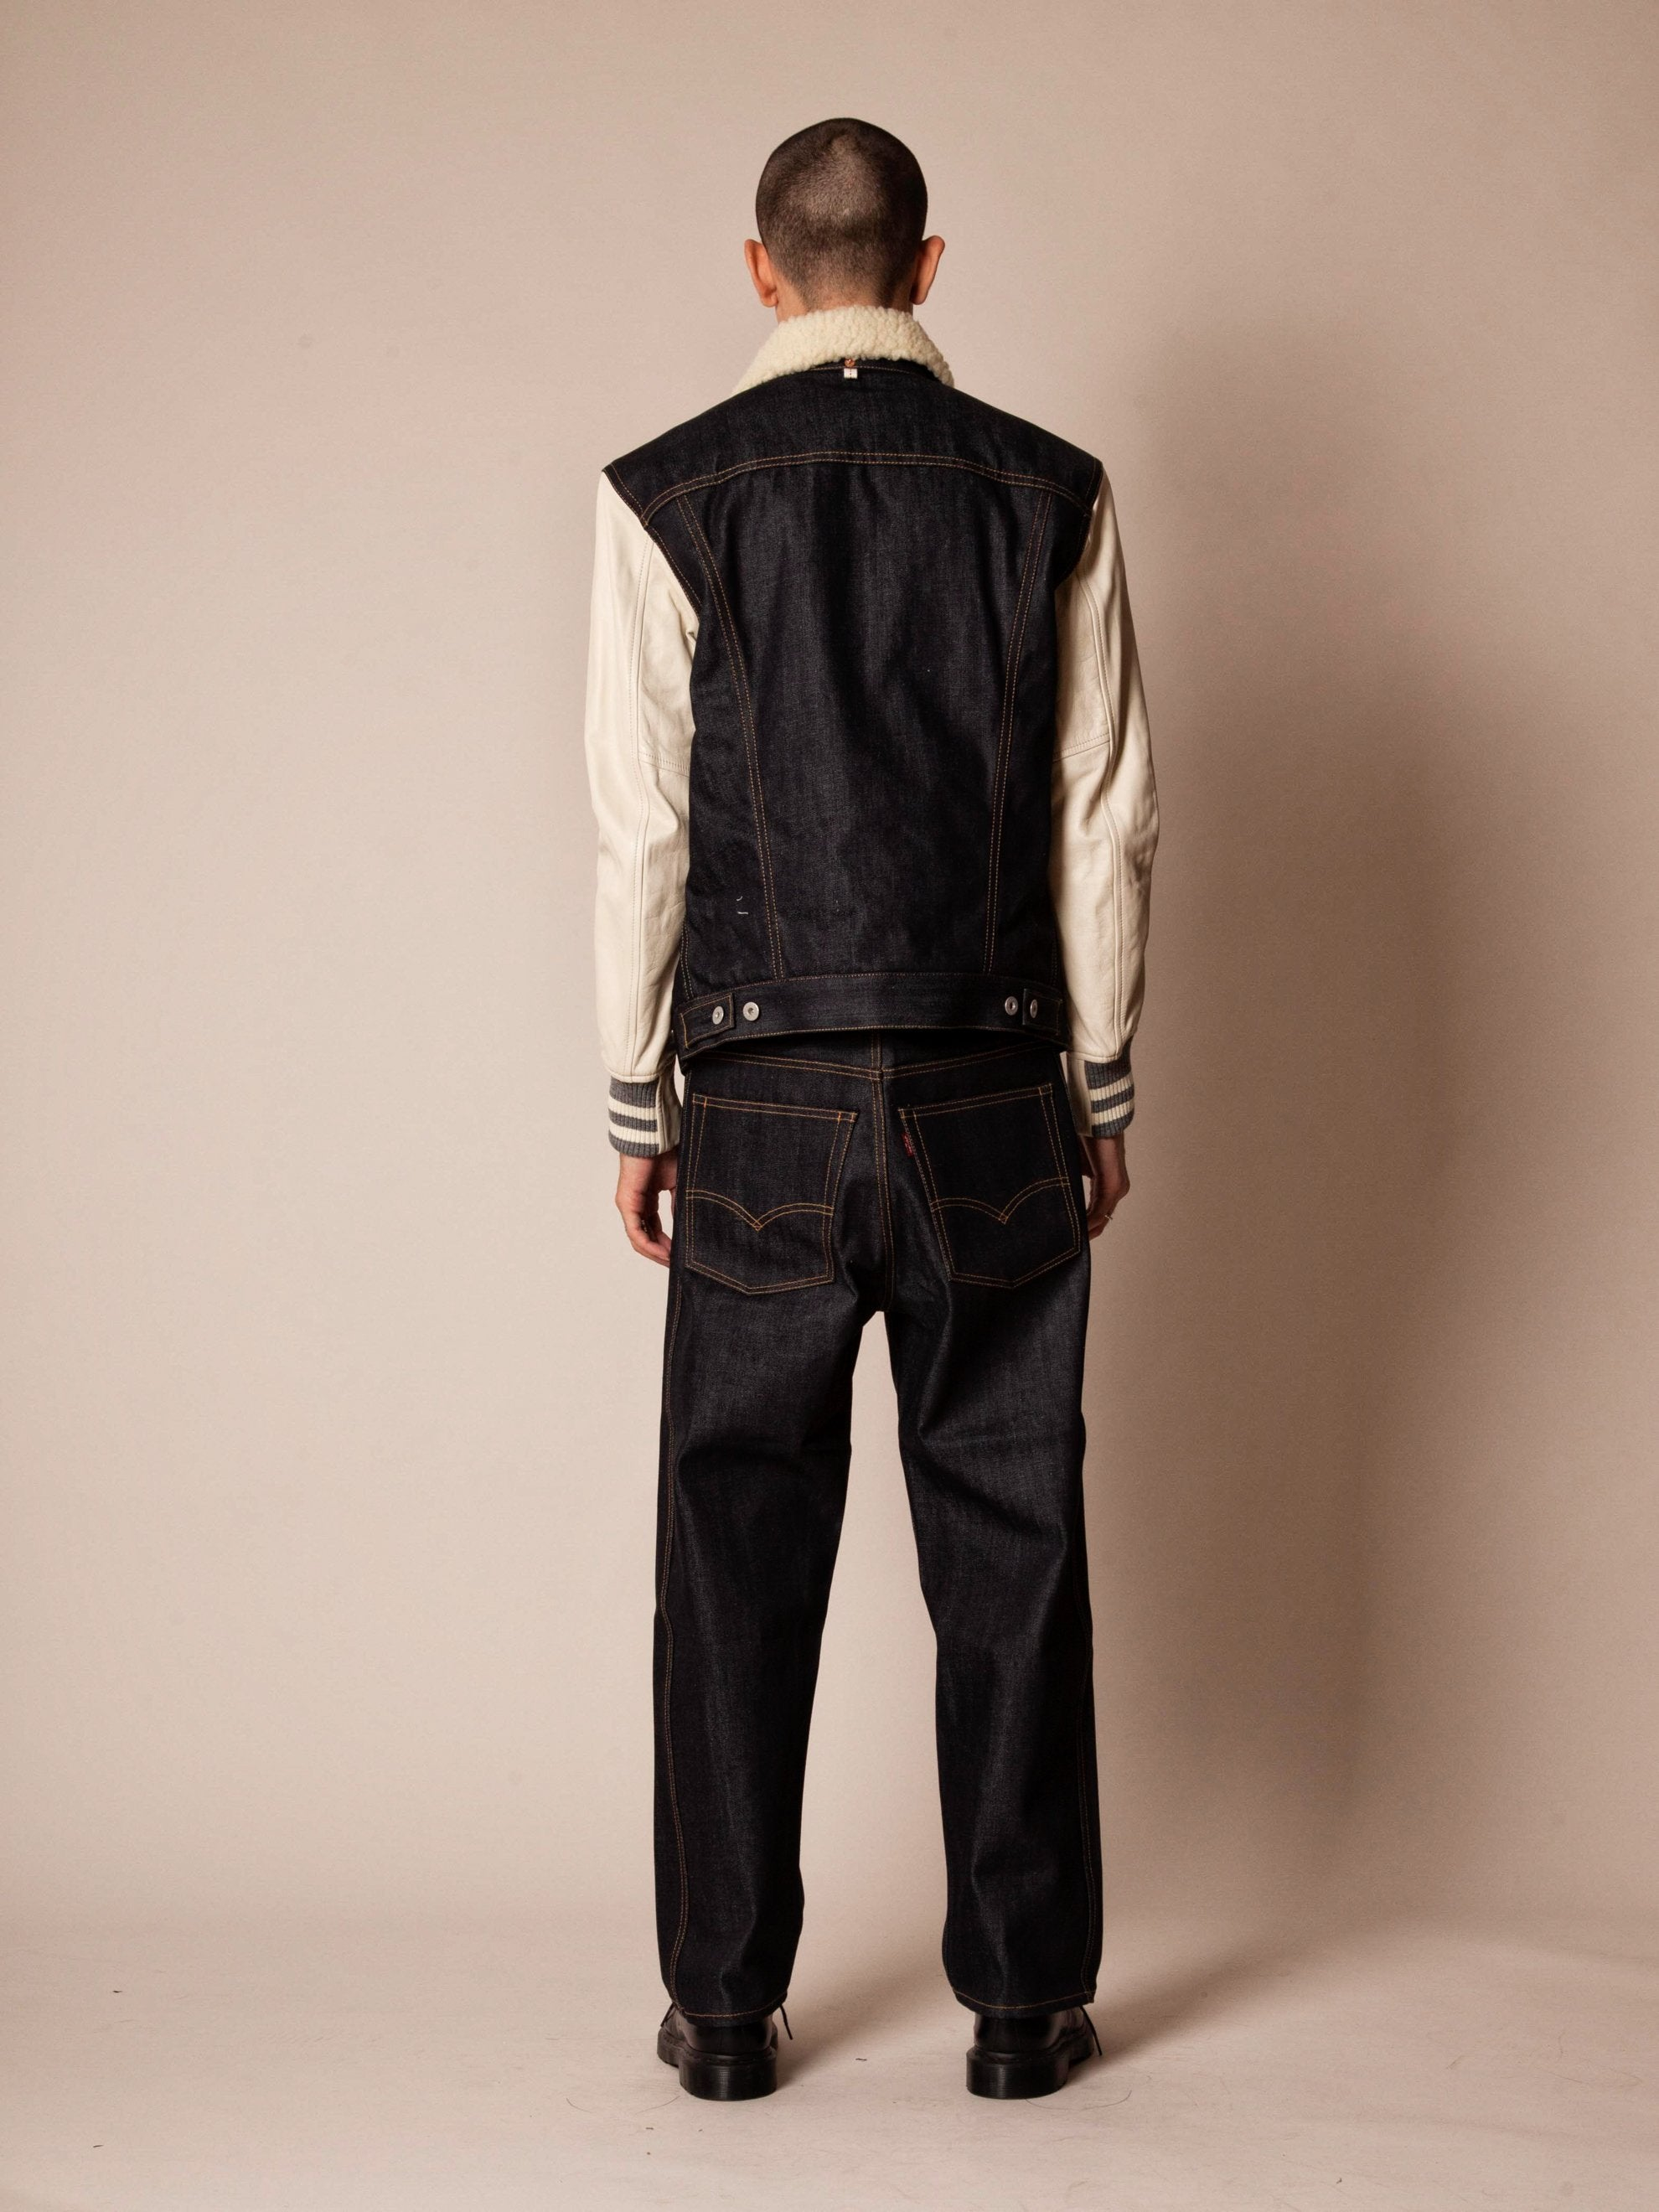 L Shearling Levis Denim Jacket 5